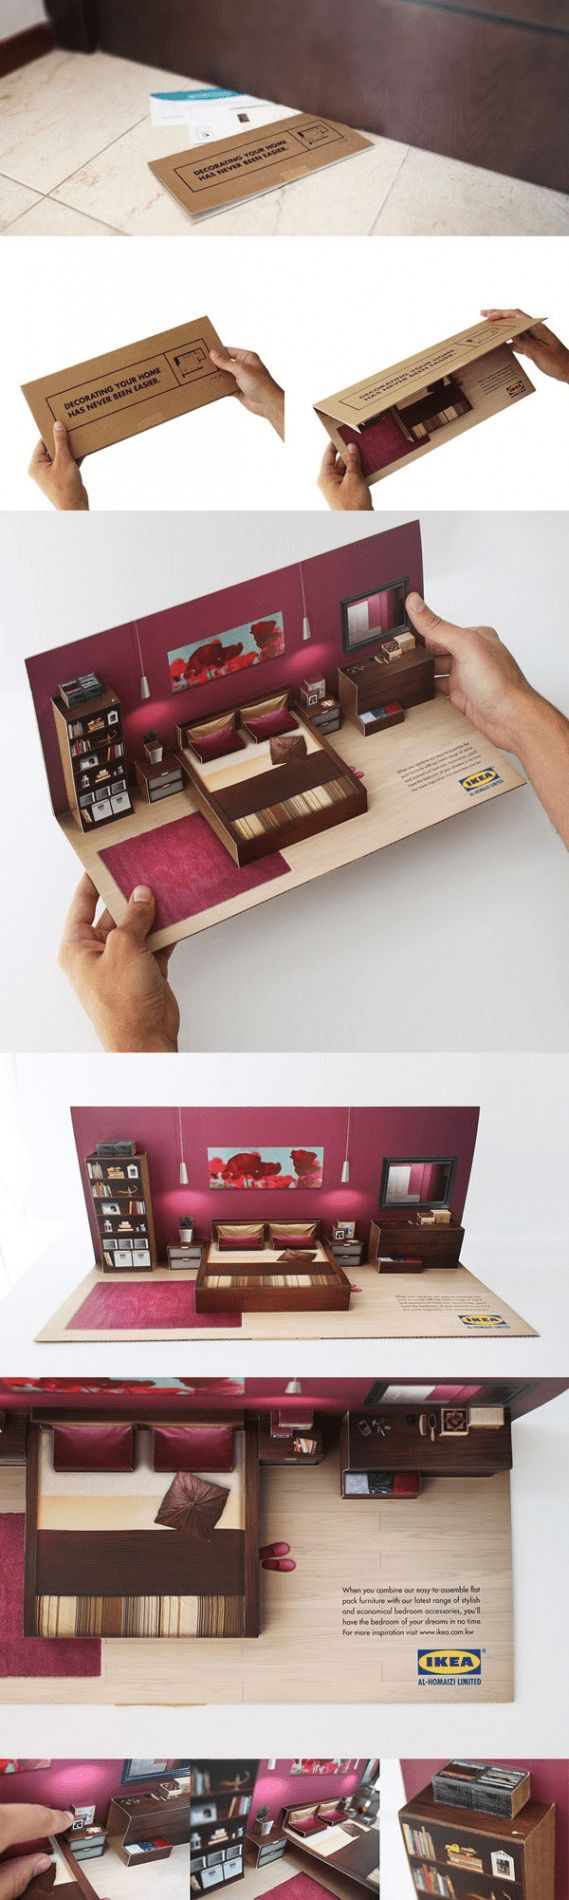 IKEA #Design Inspirations, who wouldn't want to receive this #packaging promo? #2013 #toppin PD